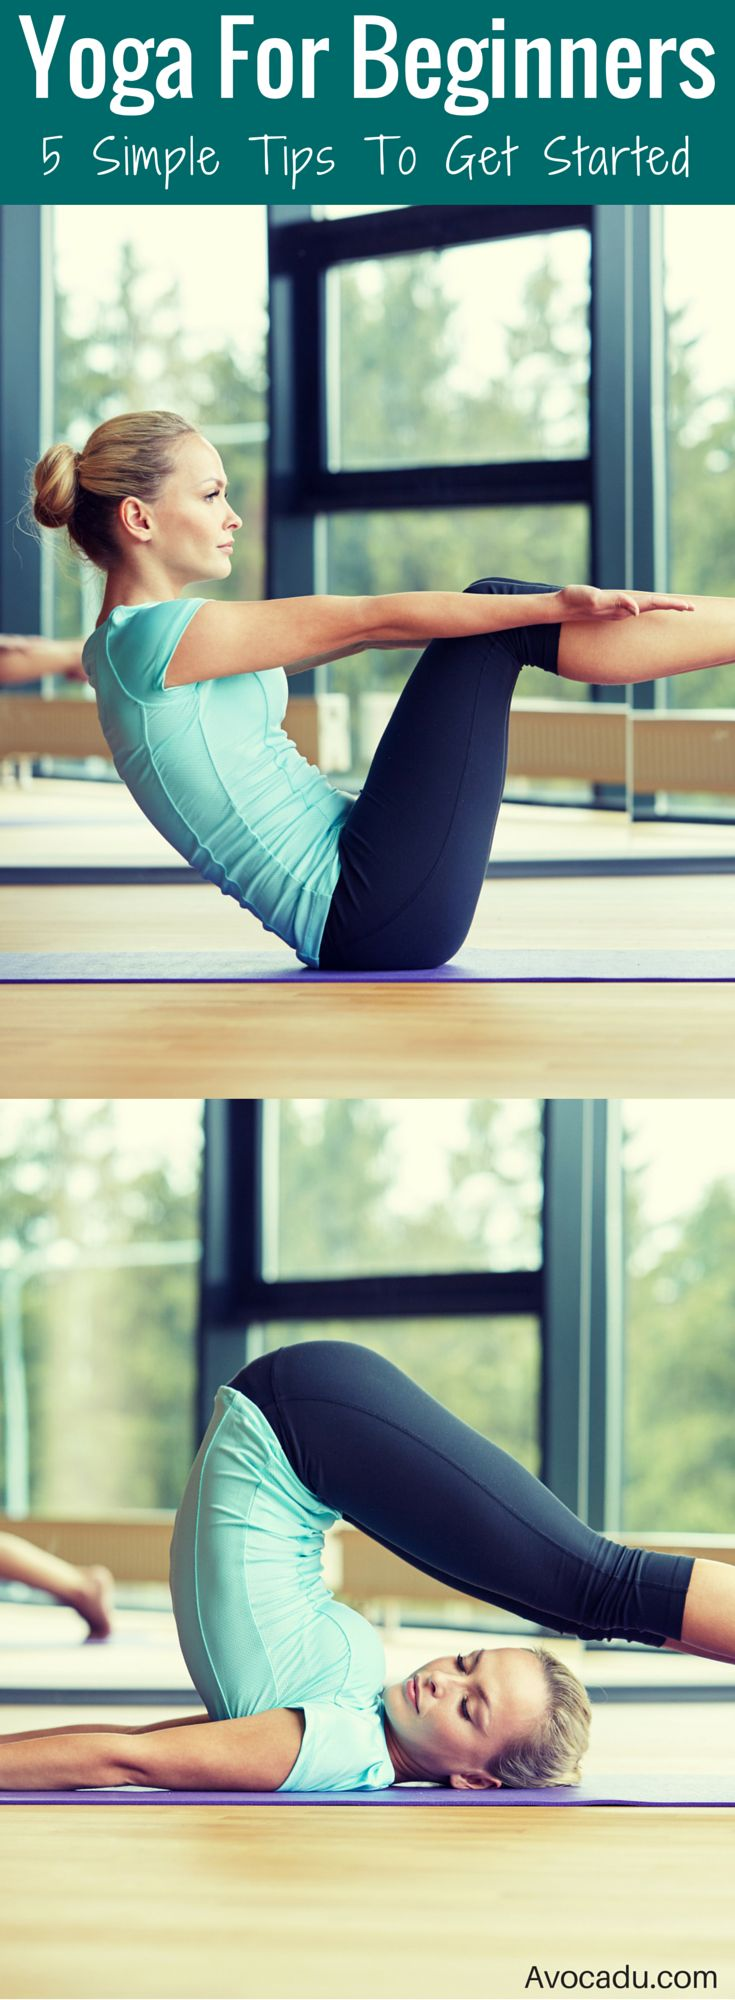 There are all sorts of yoga workouts out there - these simple tips are great for beginners that are unsure of where to start. http://avocadu.com/yoga-for-beginners-5-simple-must-know-tips/